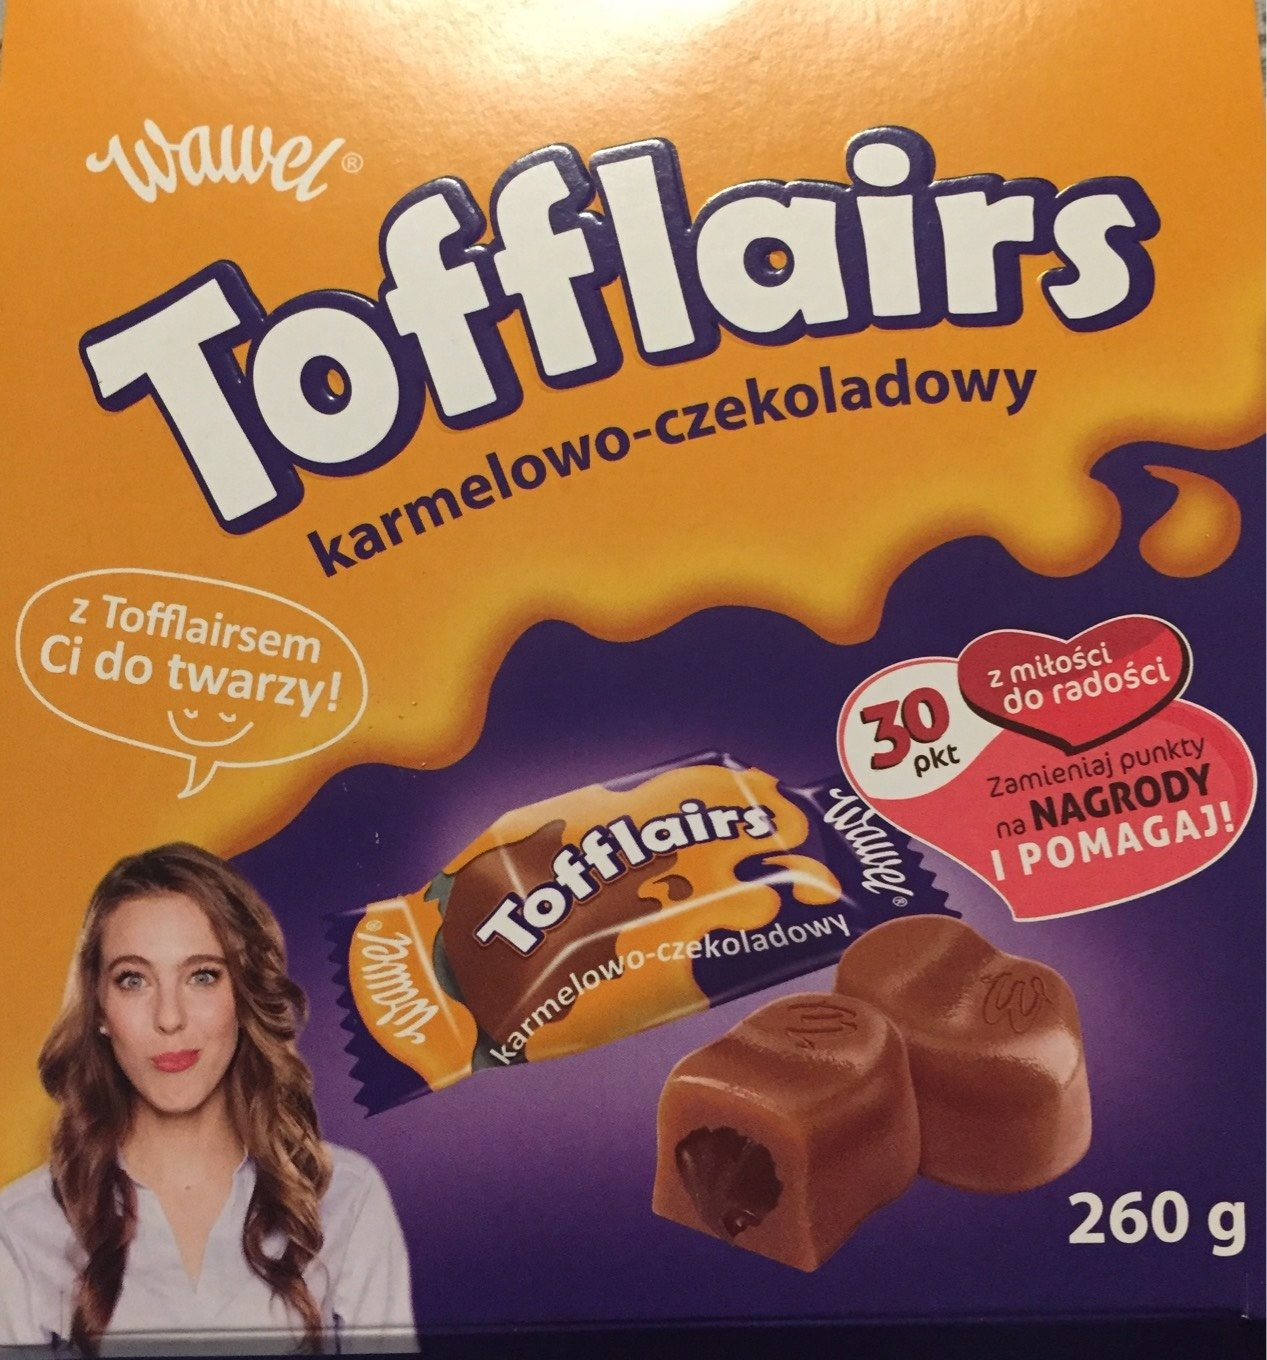 Tofflairs - Product - en